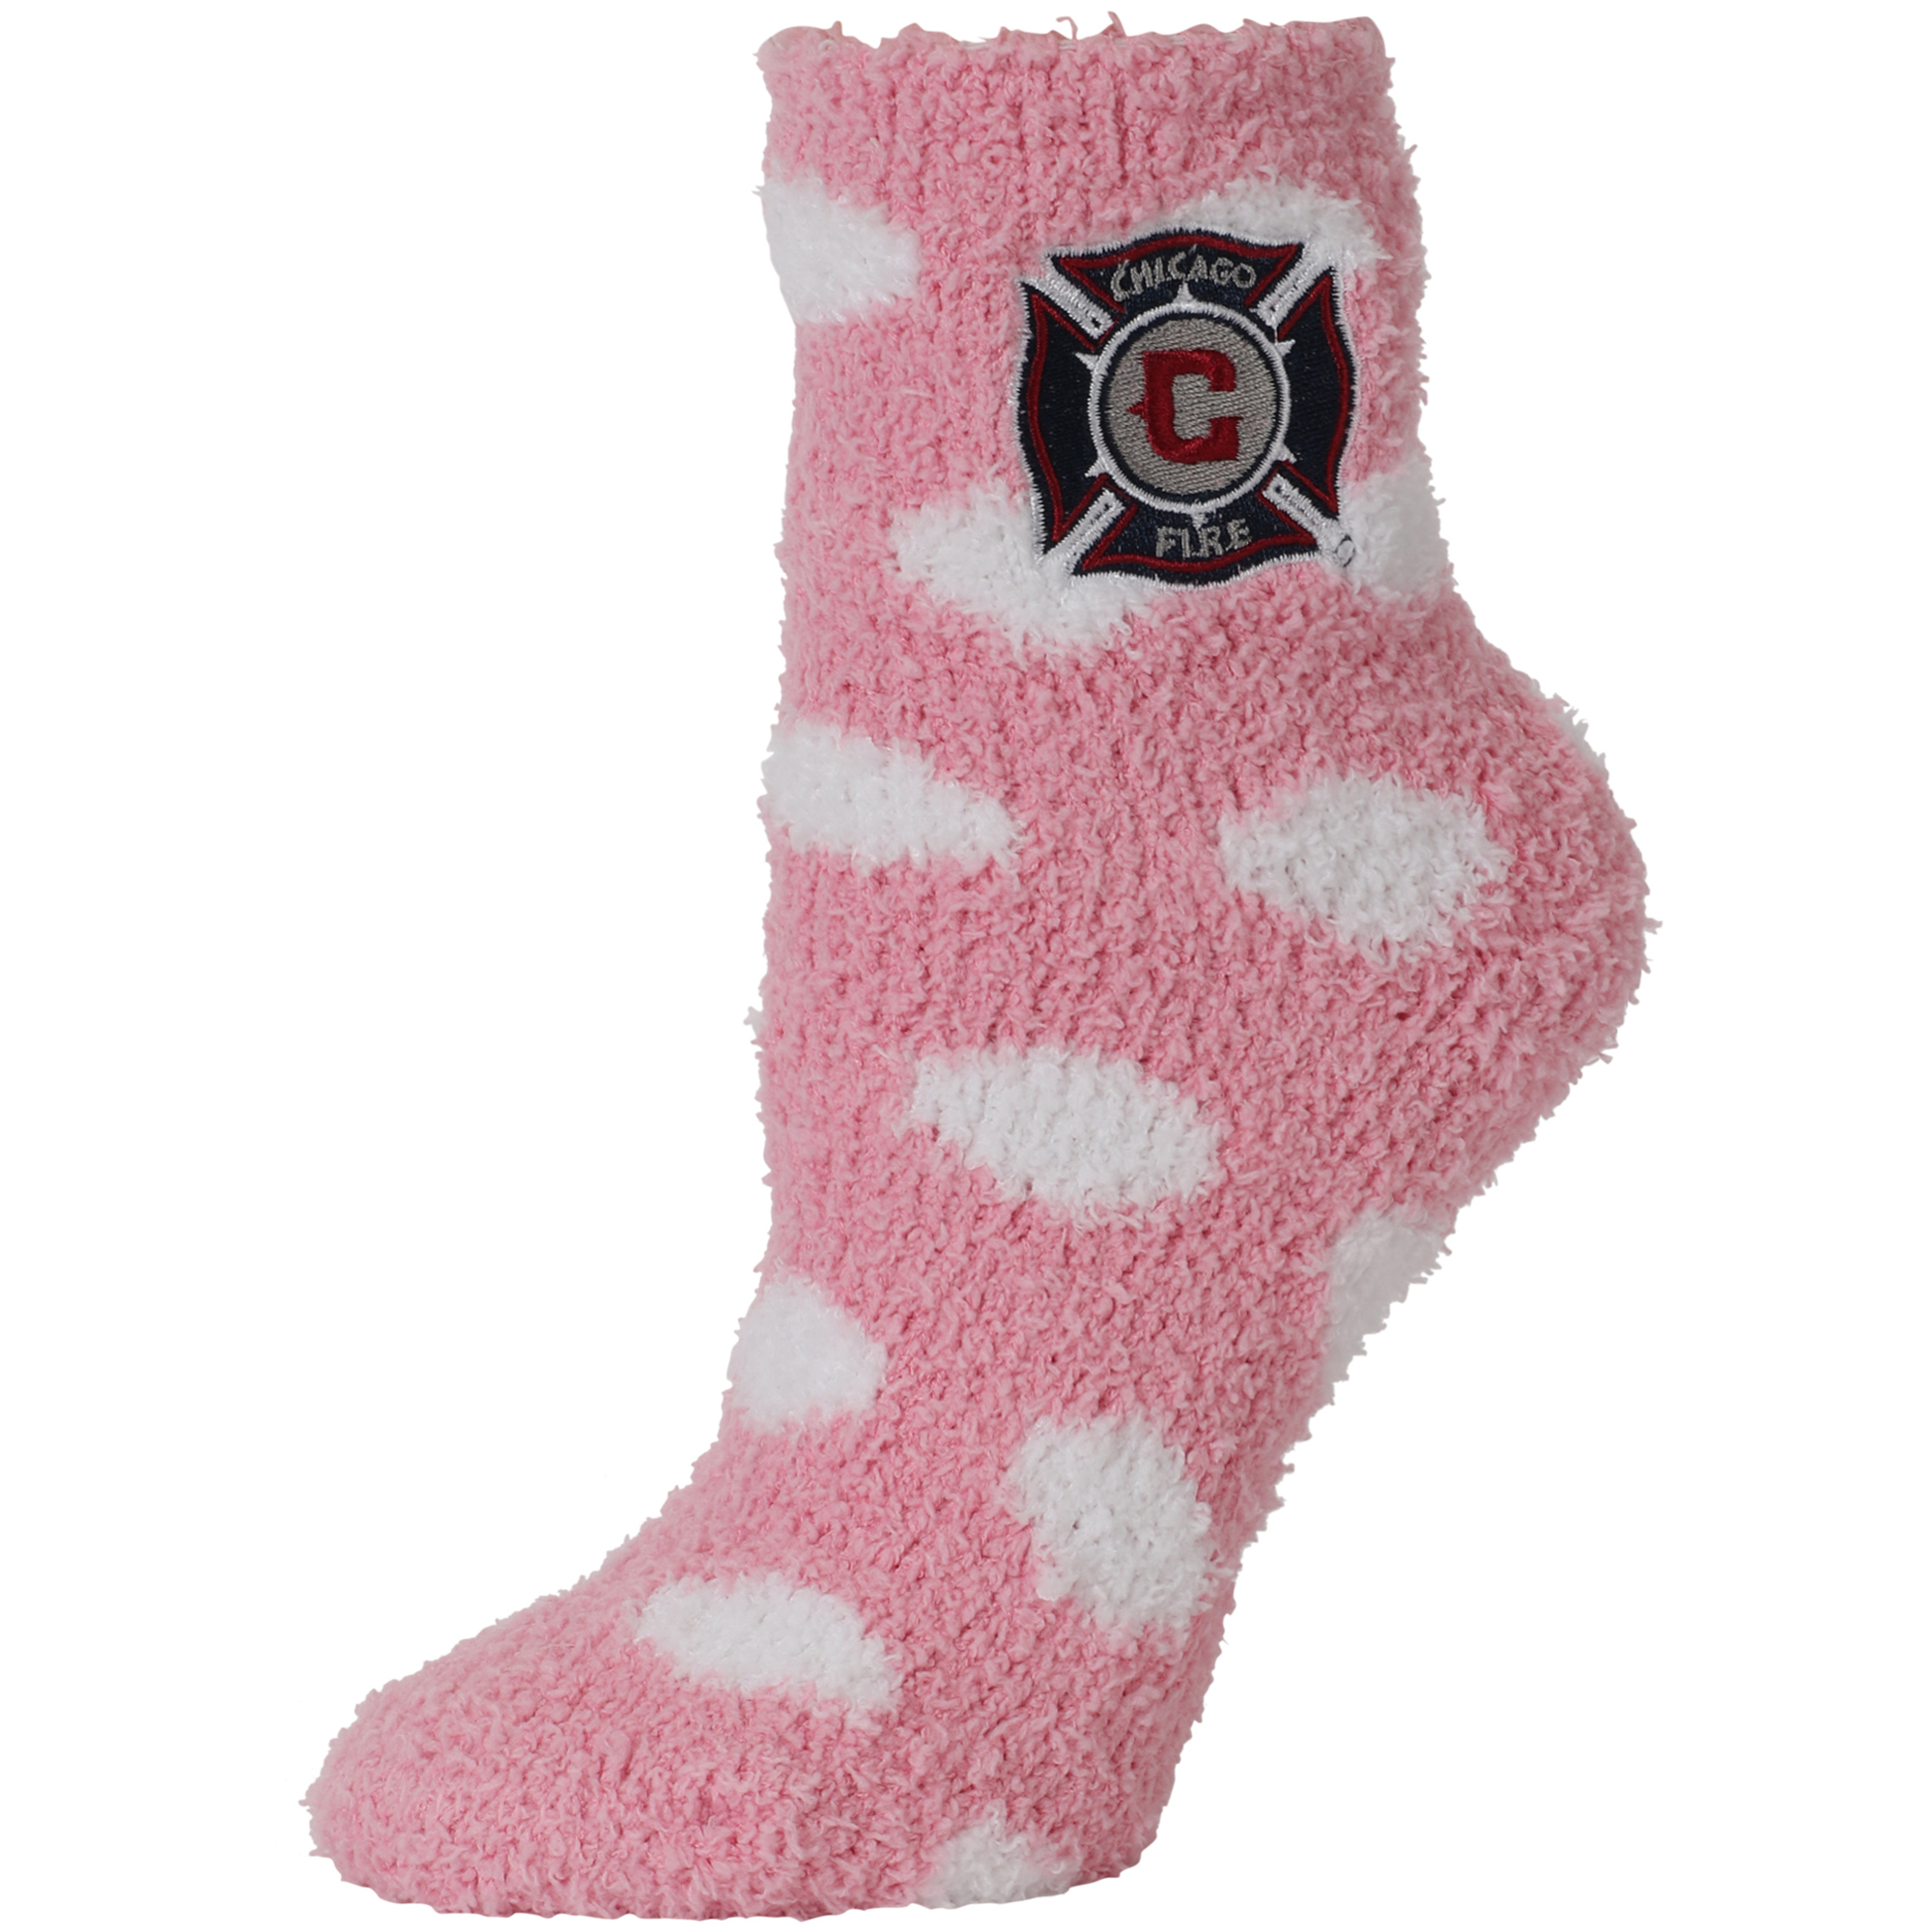 Chicago Fire ZooZatz Women's Fuzzy Socks - No Size